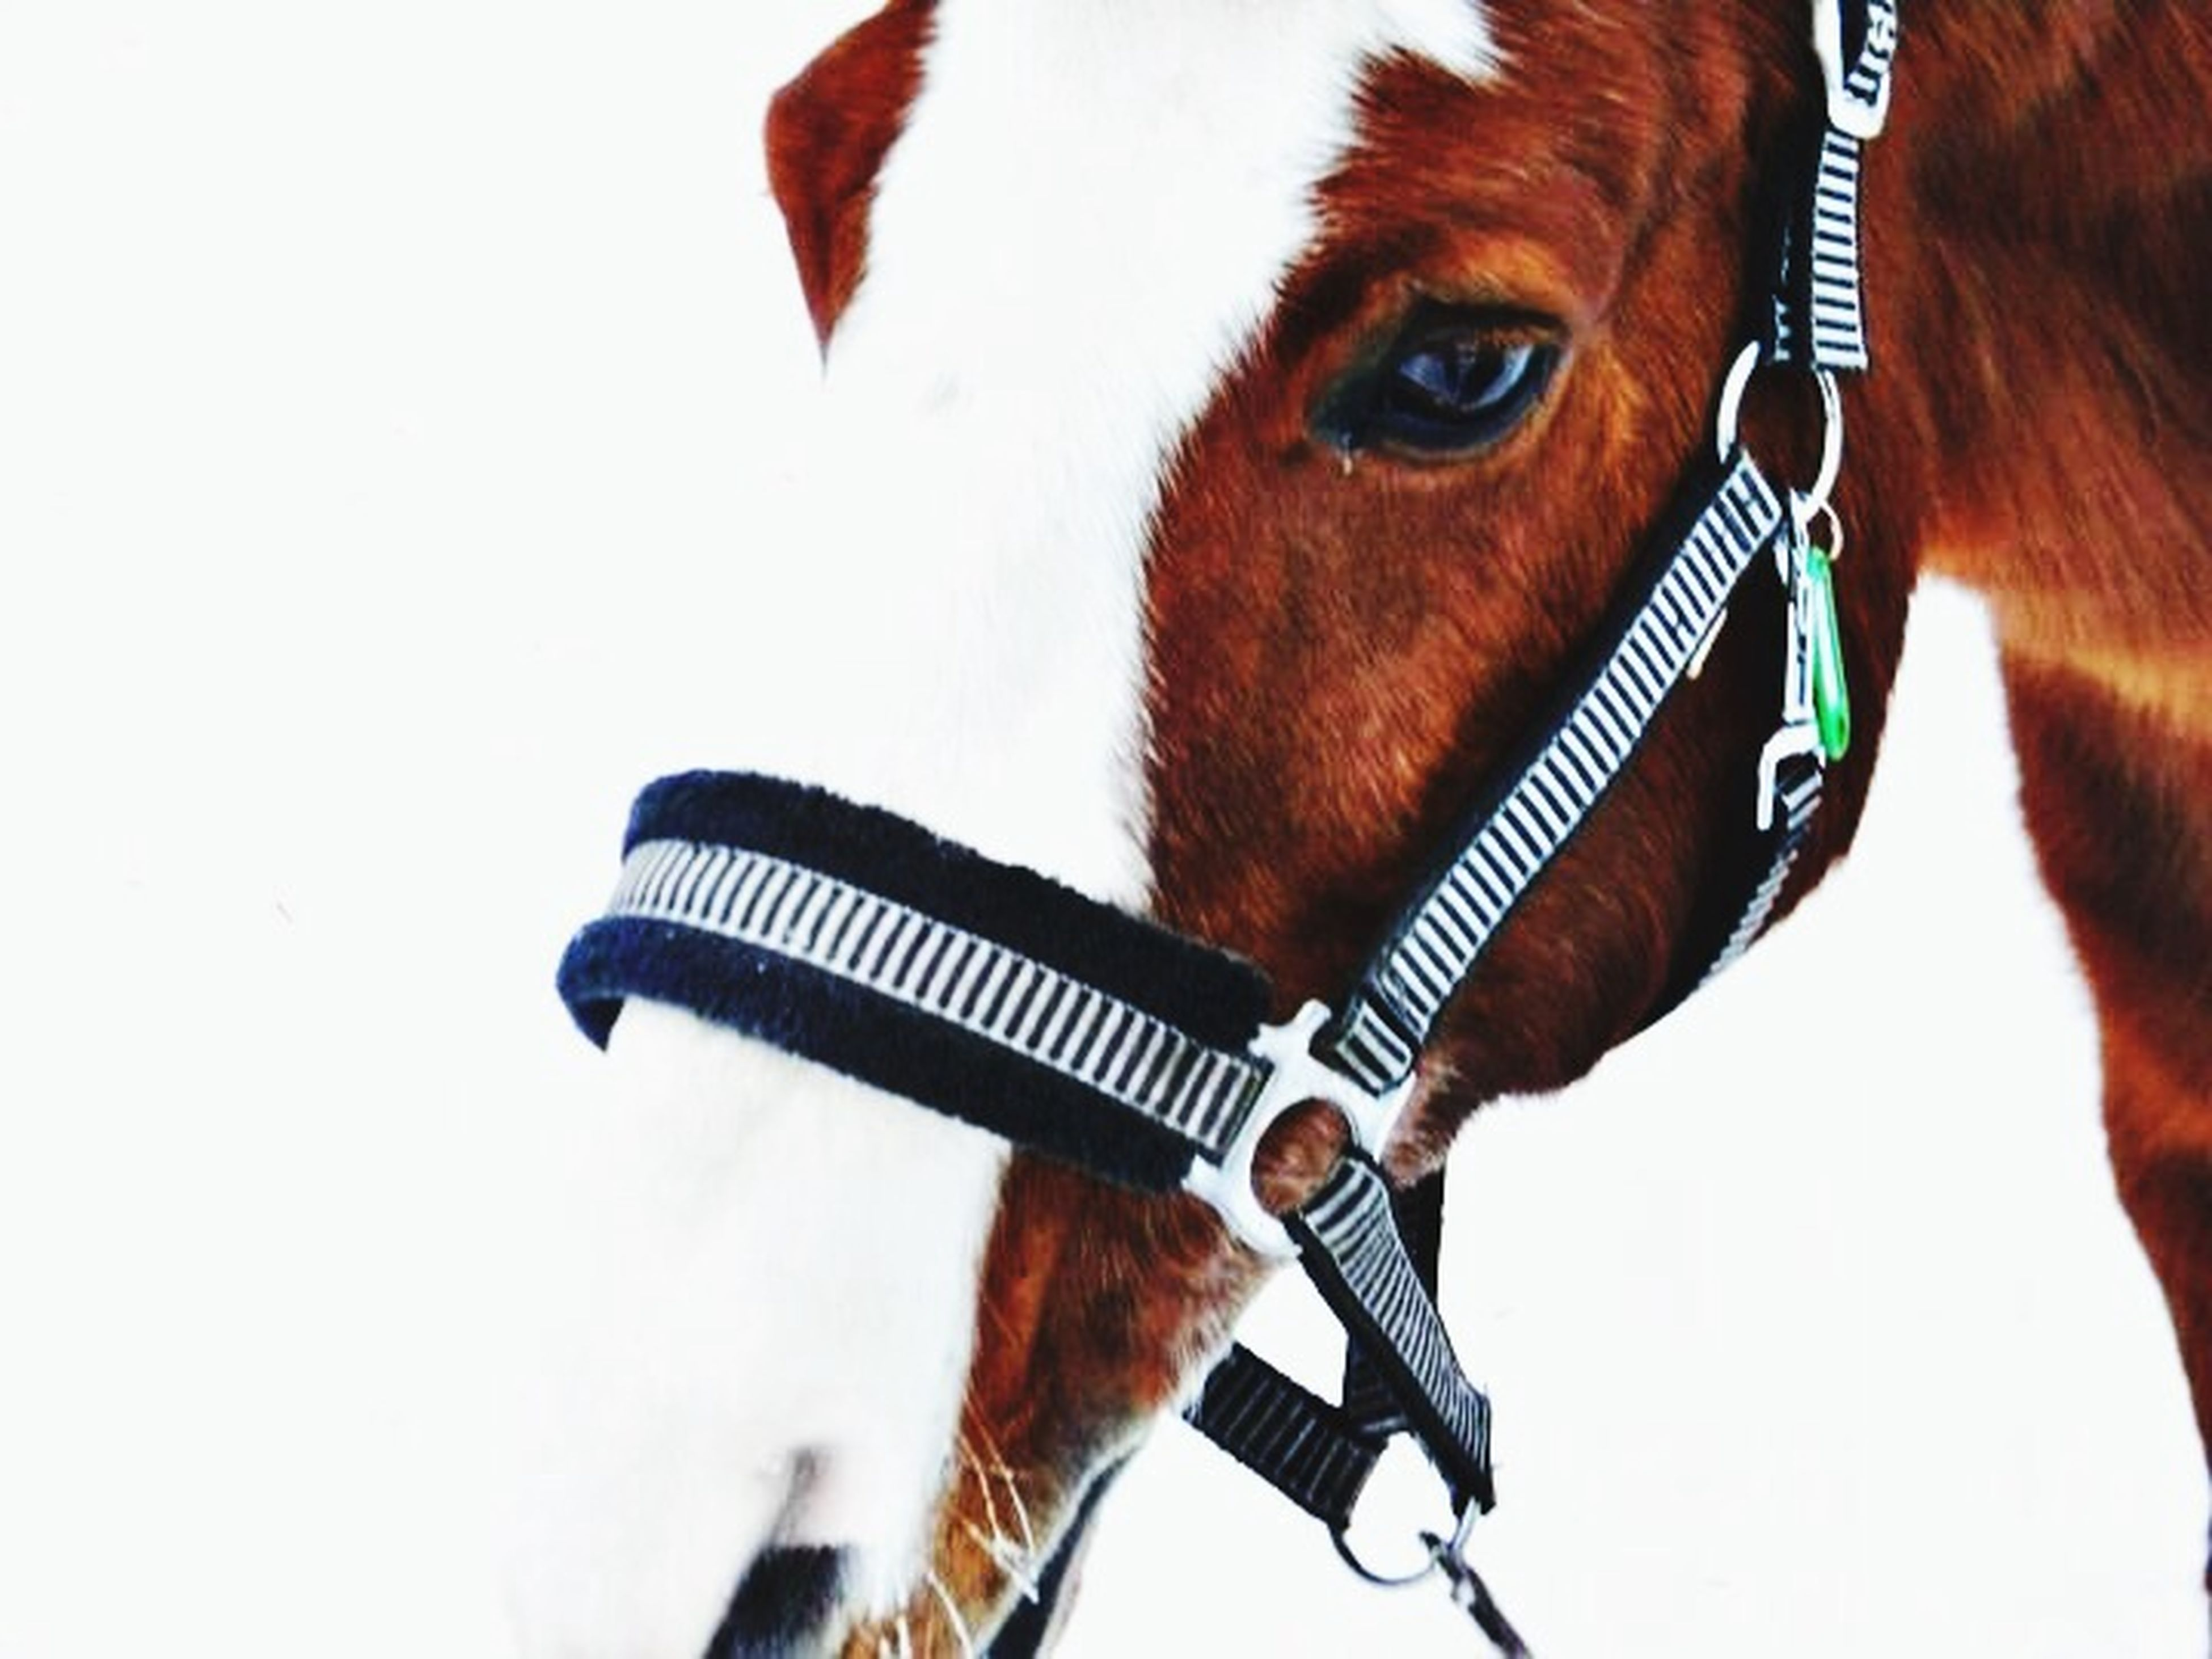 close-up, one animal, part of, animal themes, white background, studio shot, focus on foreground, front view, animal head, indoors, person, side view, horse, holding, copy space, brown, cropped